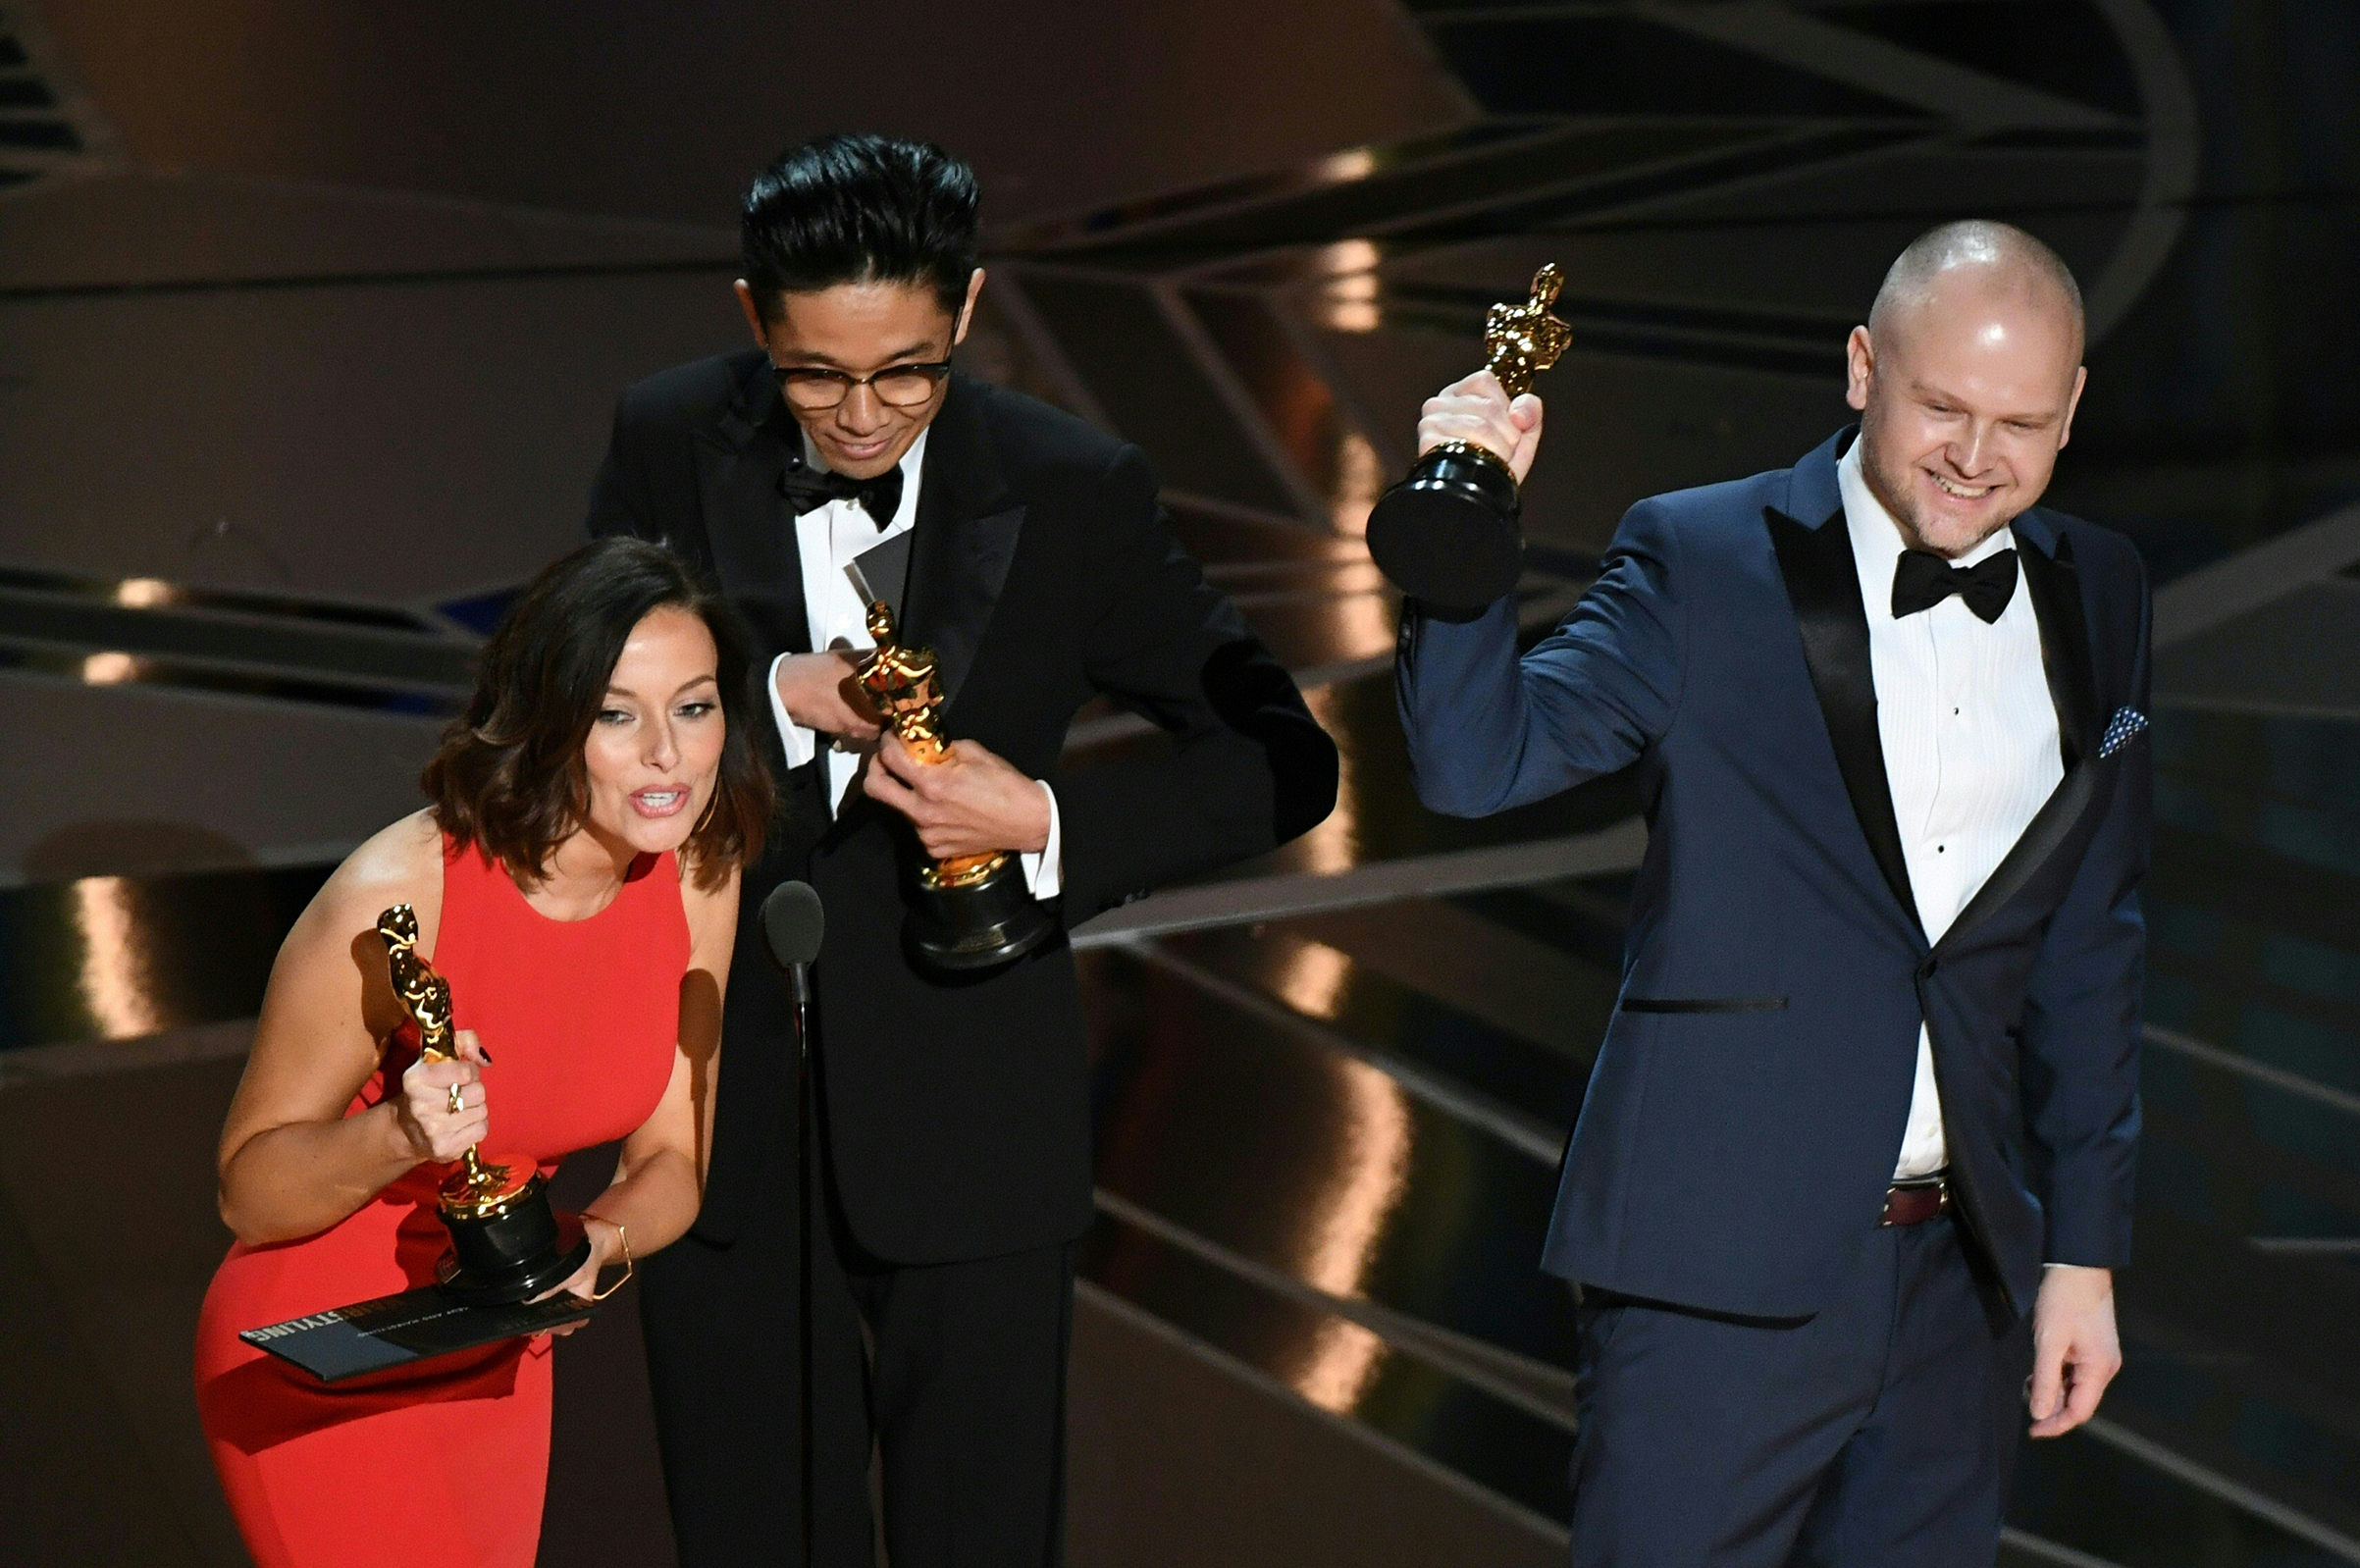 Make-Up and Hairstyling artists Lucy Sibbick, Kazuhiro Tsuji and David Malinowski accept the Oscar for Best Makeup and Hairstyling in Darkest Hour during the 90th Annual Academy Awards show on March 4, 2018 in Hollywood.